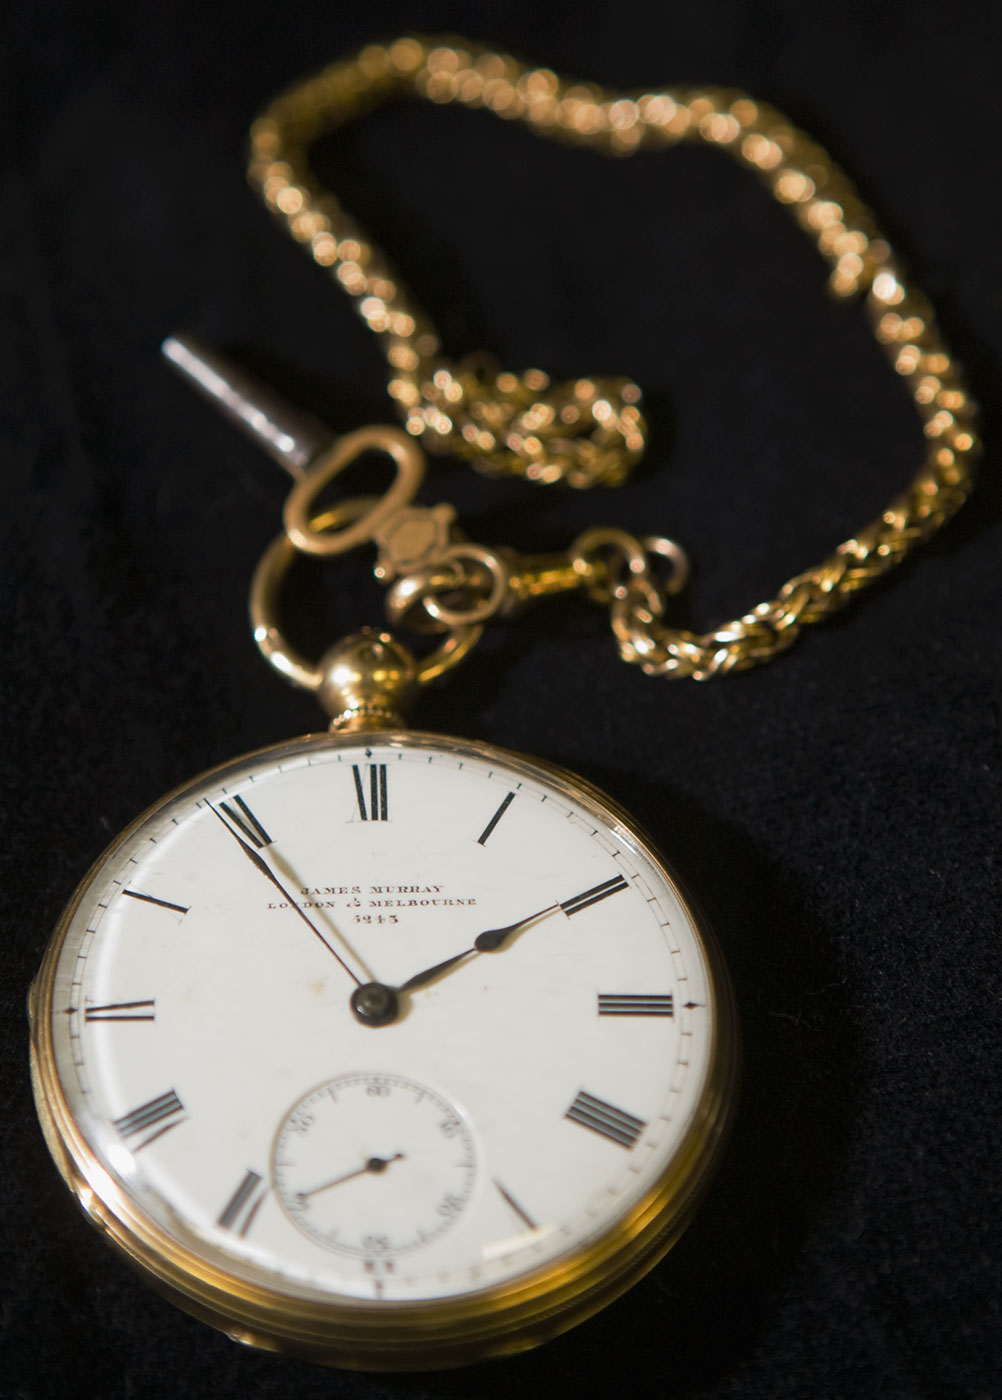 An open face pocket watch with an attached gold chain and key - click to view larger image